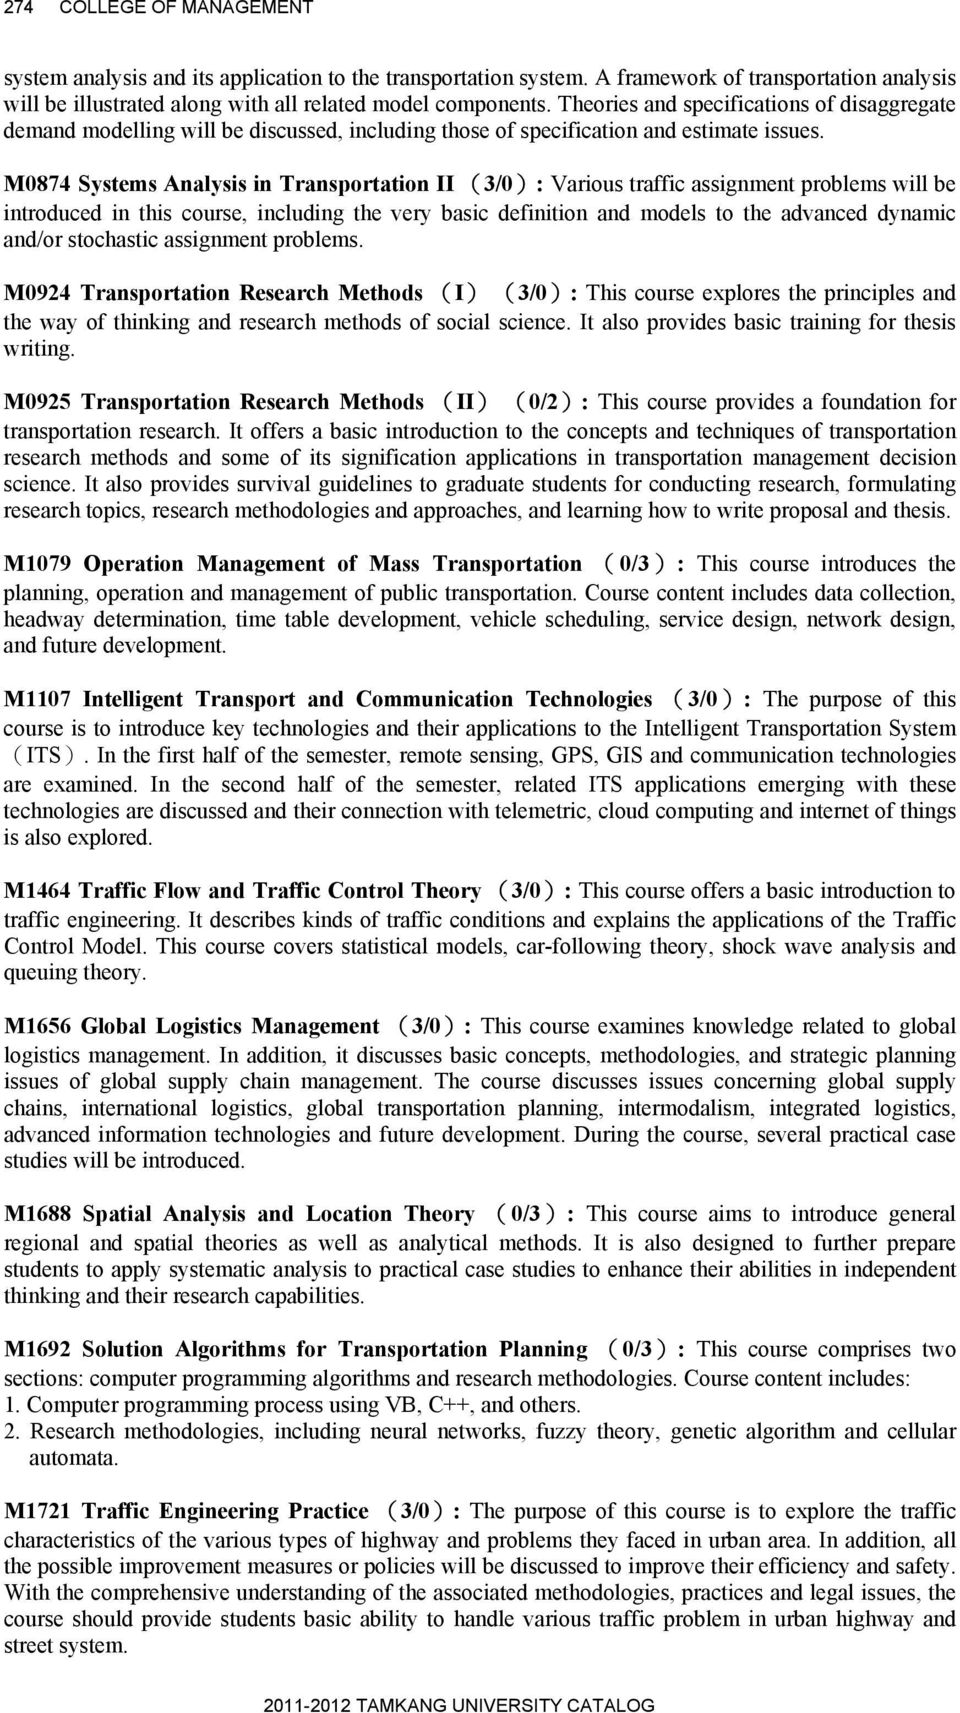 M0874 Systems Analysis in Transportation II (3/0): Various traffic assignment problems will be introduced in this course, including the very basic definition and models to the advanced dynamic and/or